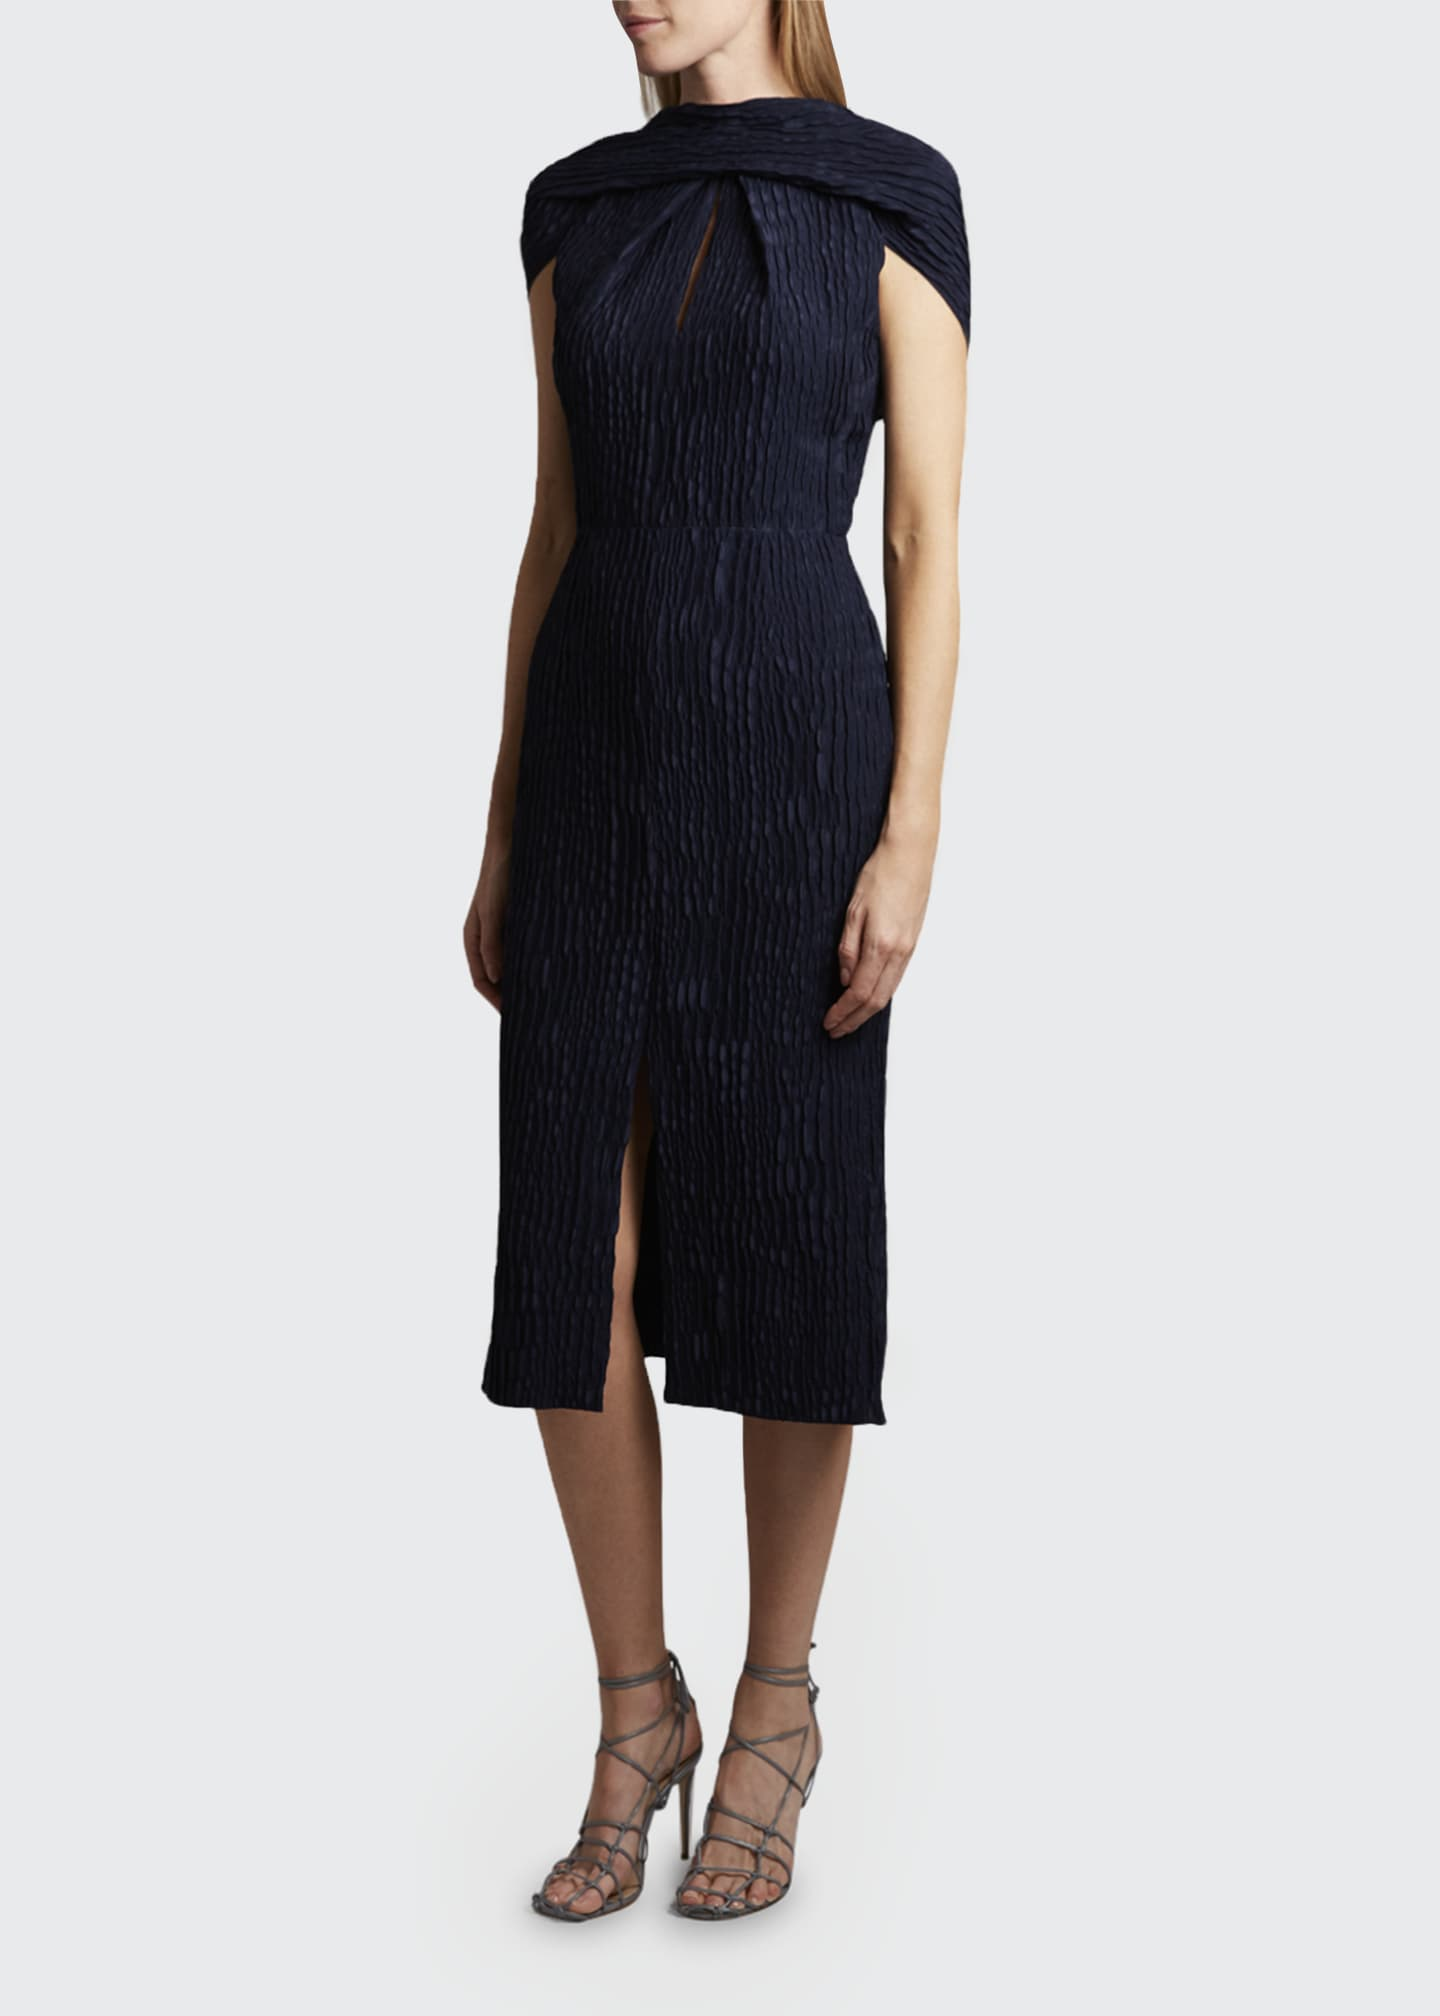 Belem Dress Silk Jacquard High Neck Dress